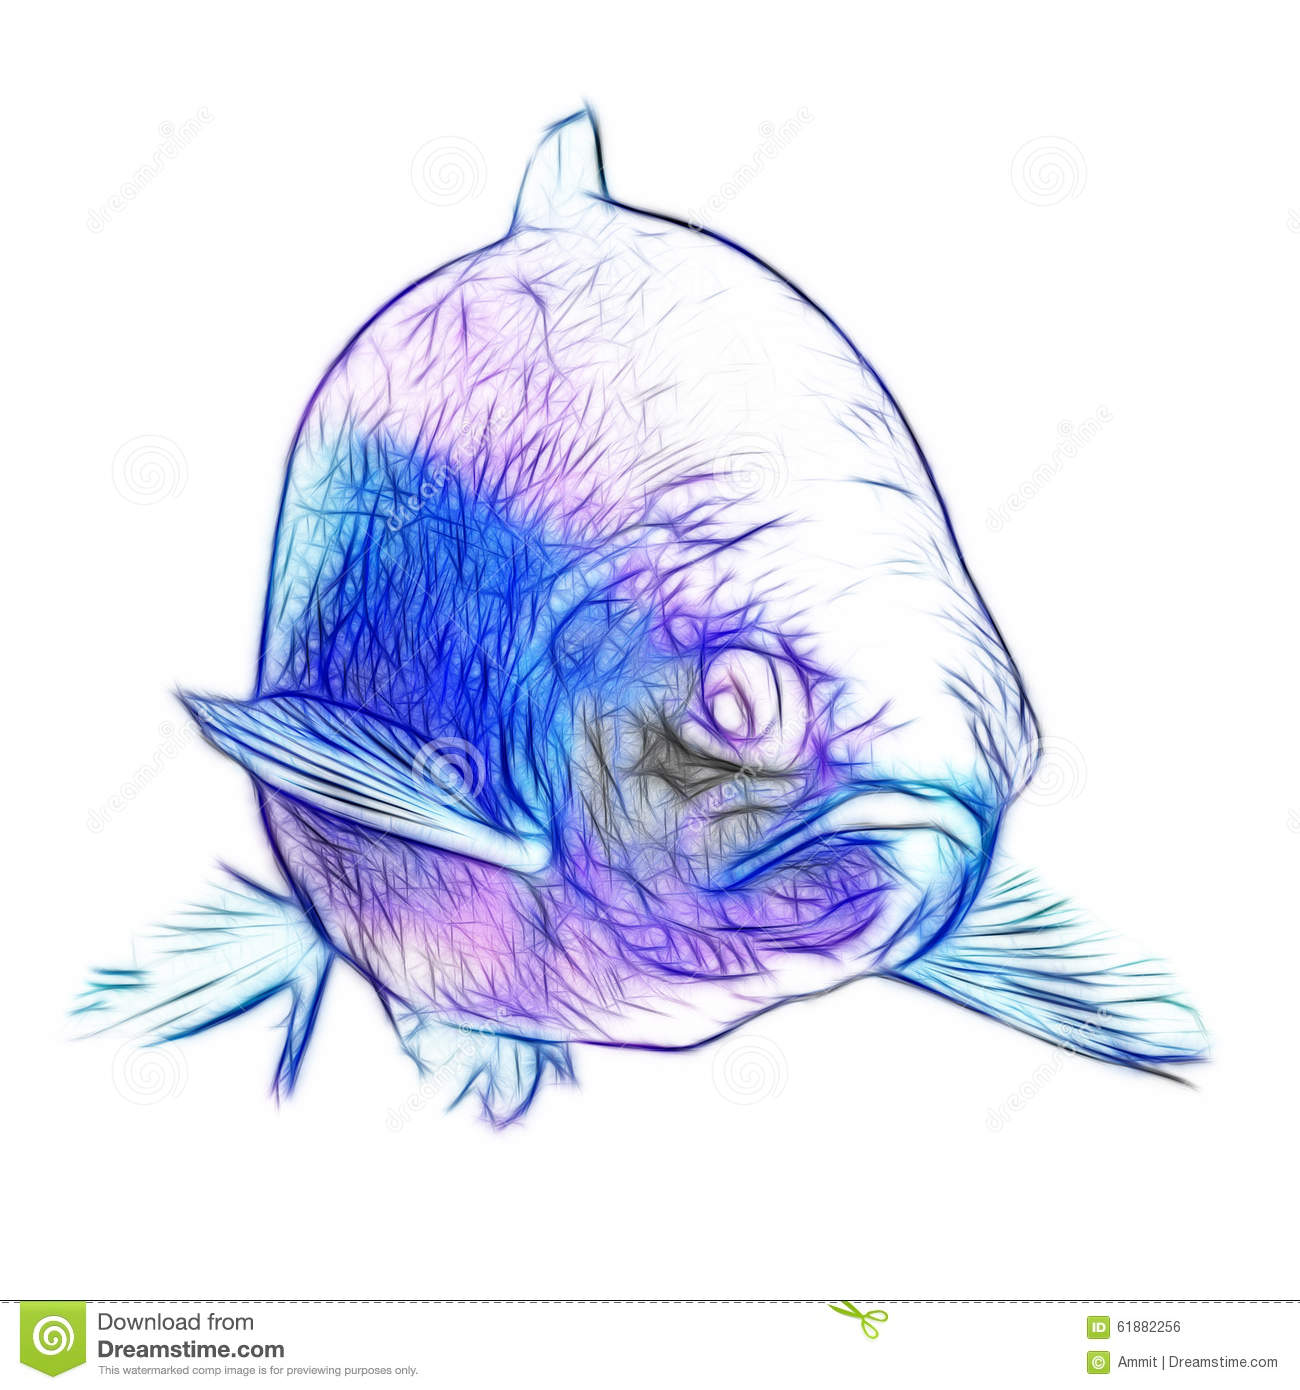 Speckled trout fish underwater royalty free cartoon for Dream of fish swimming